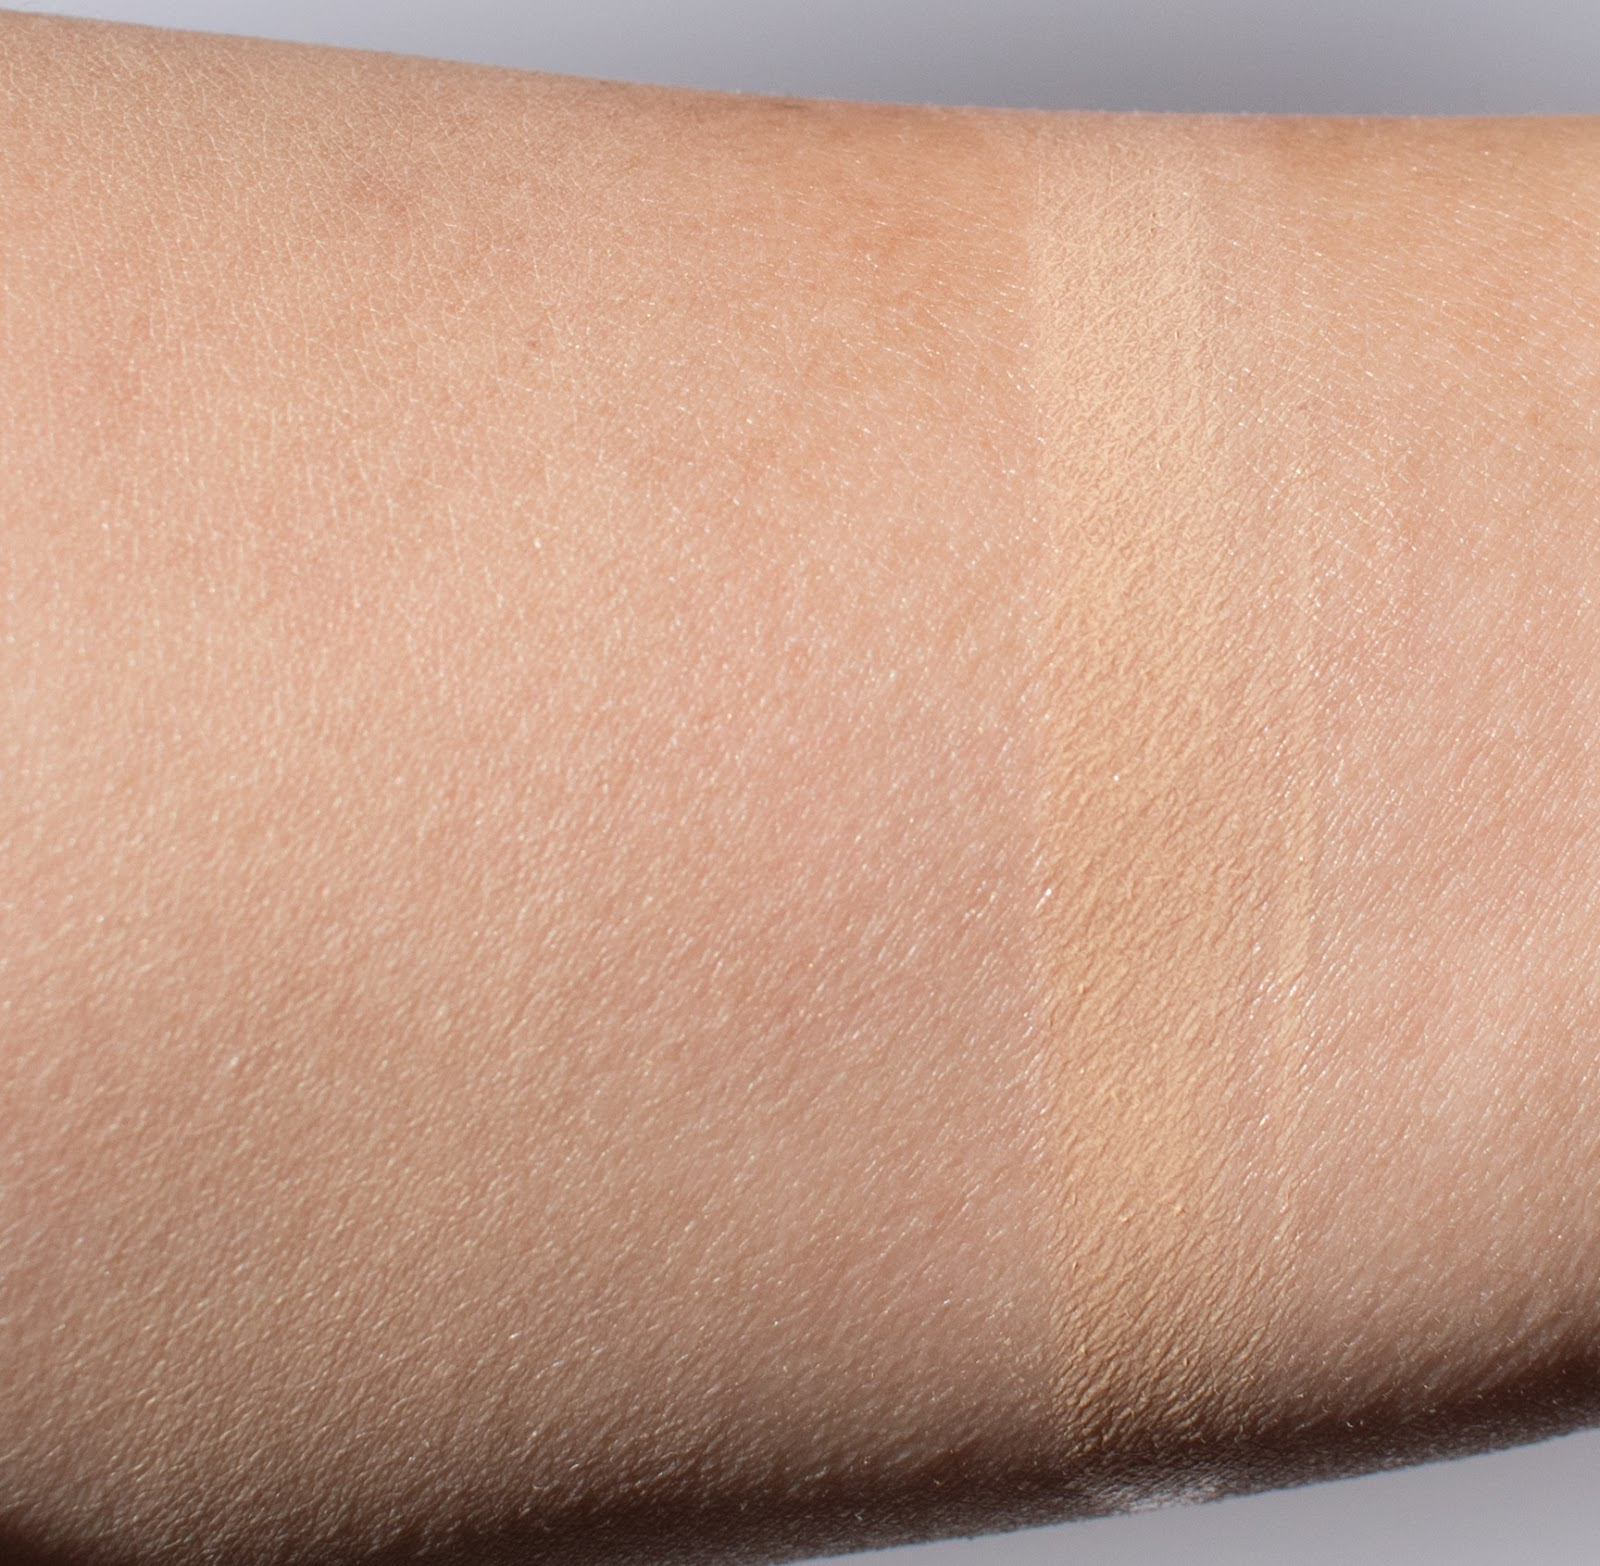 Glossier Perfecting Skin Tint in Medium Swatches